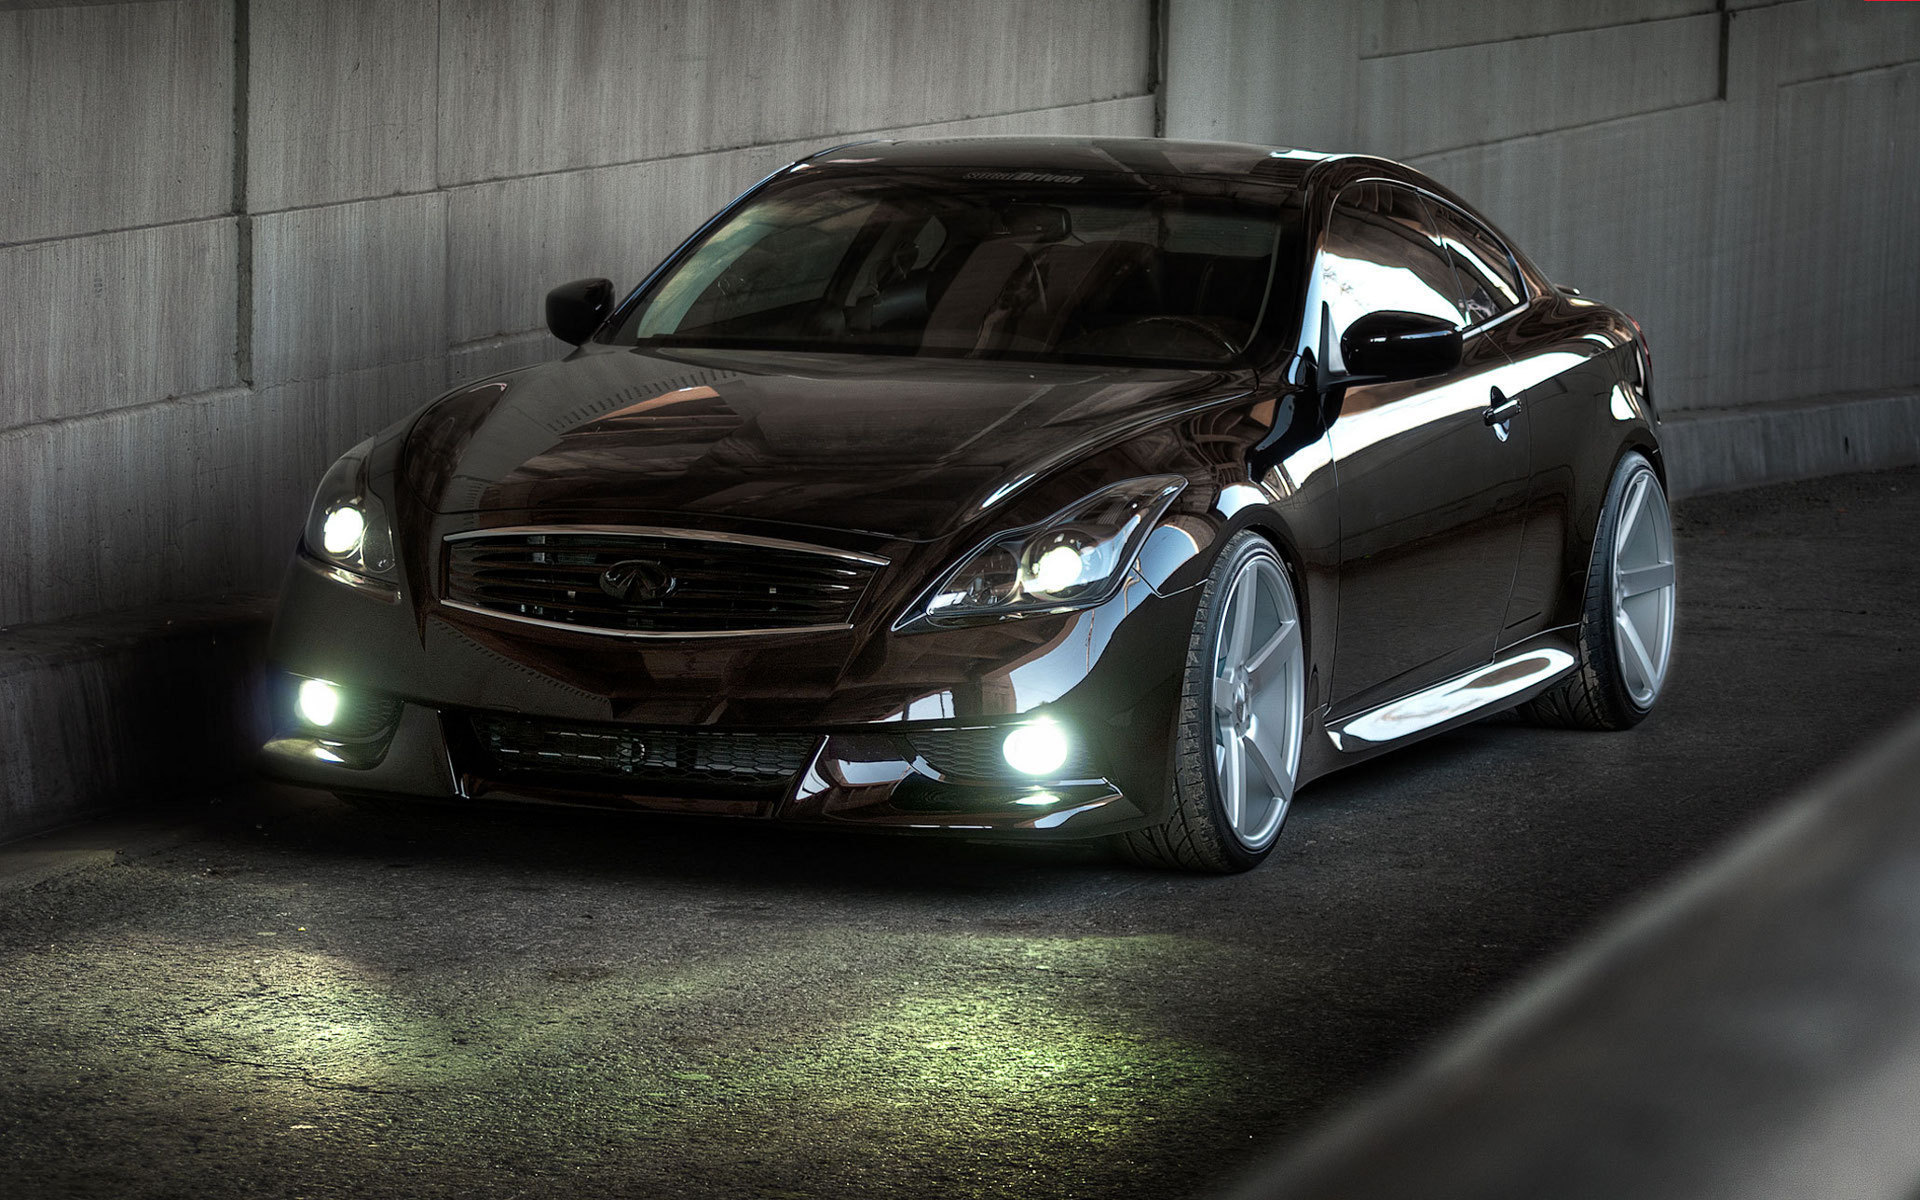 Infiniti G37 Coupe Stance 1920x1200 Download Hd Wallpaper Wallpapertip